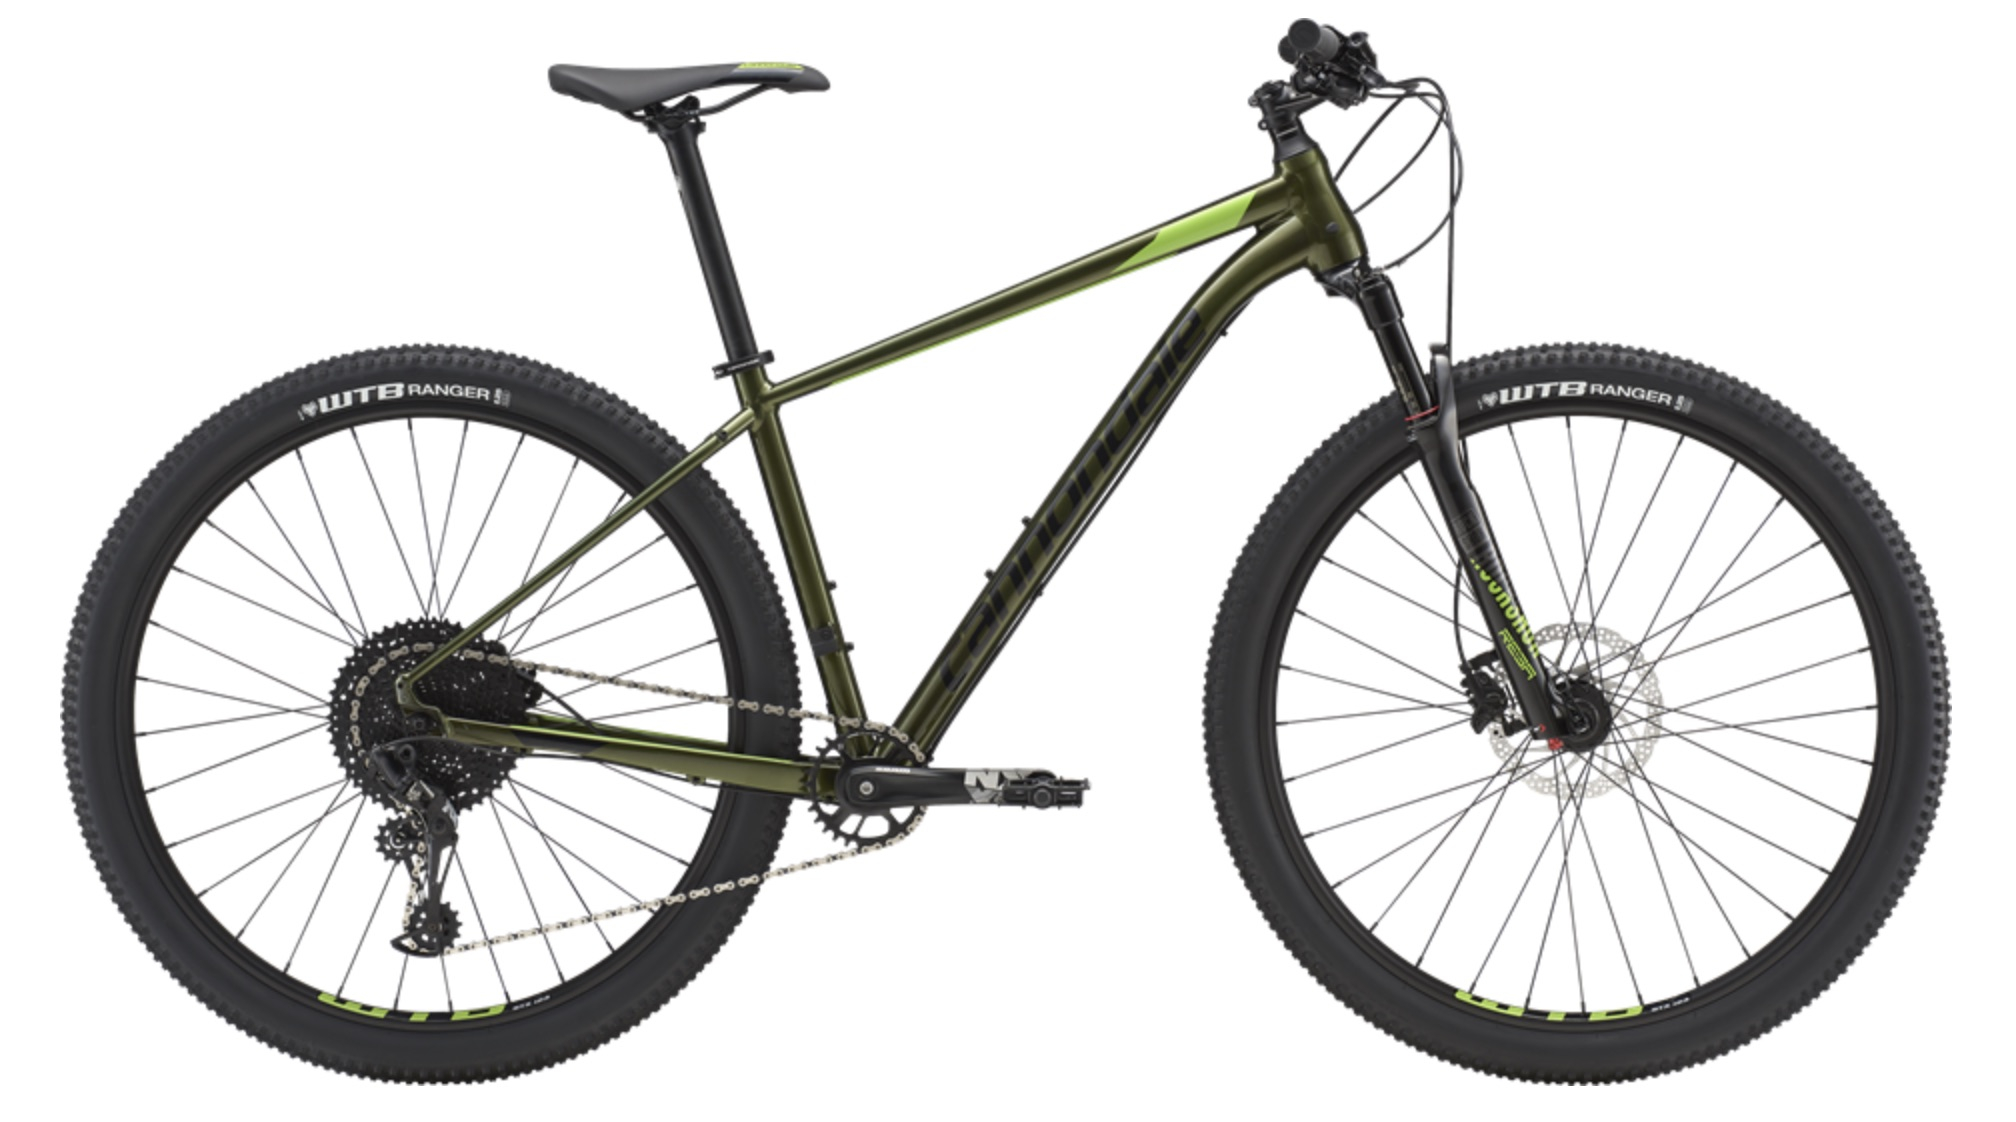 Cannondale Trail 1 Vulcan Green - 2019 - 1x12 speed - C26109M30xx | item_misc